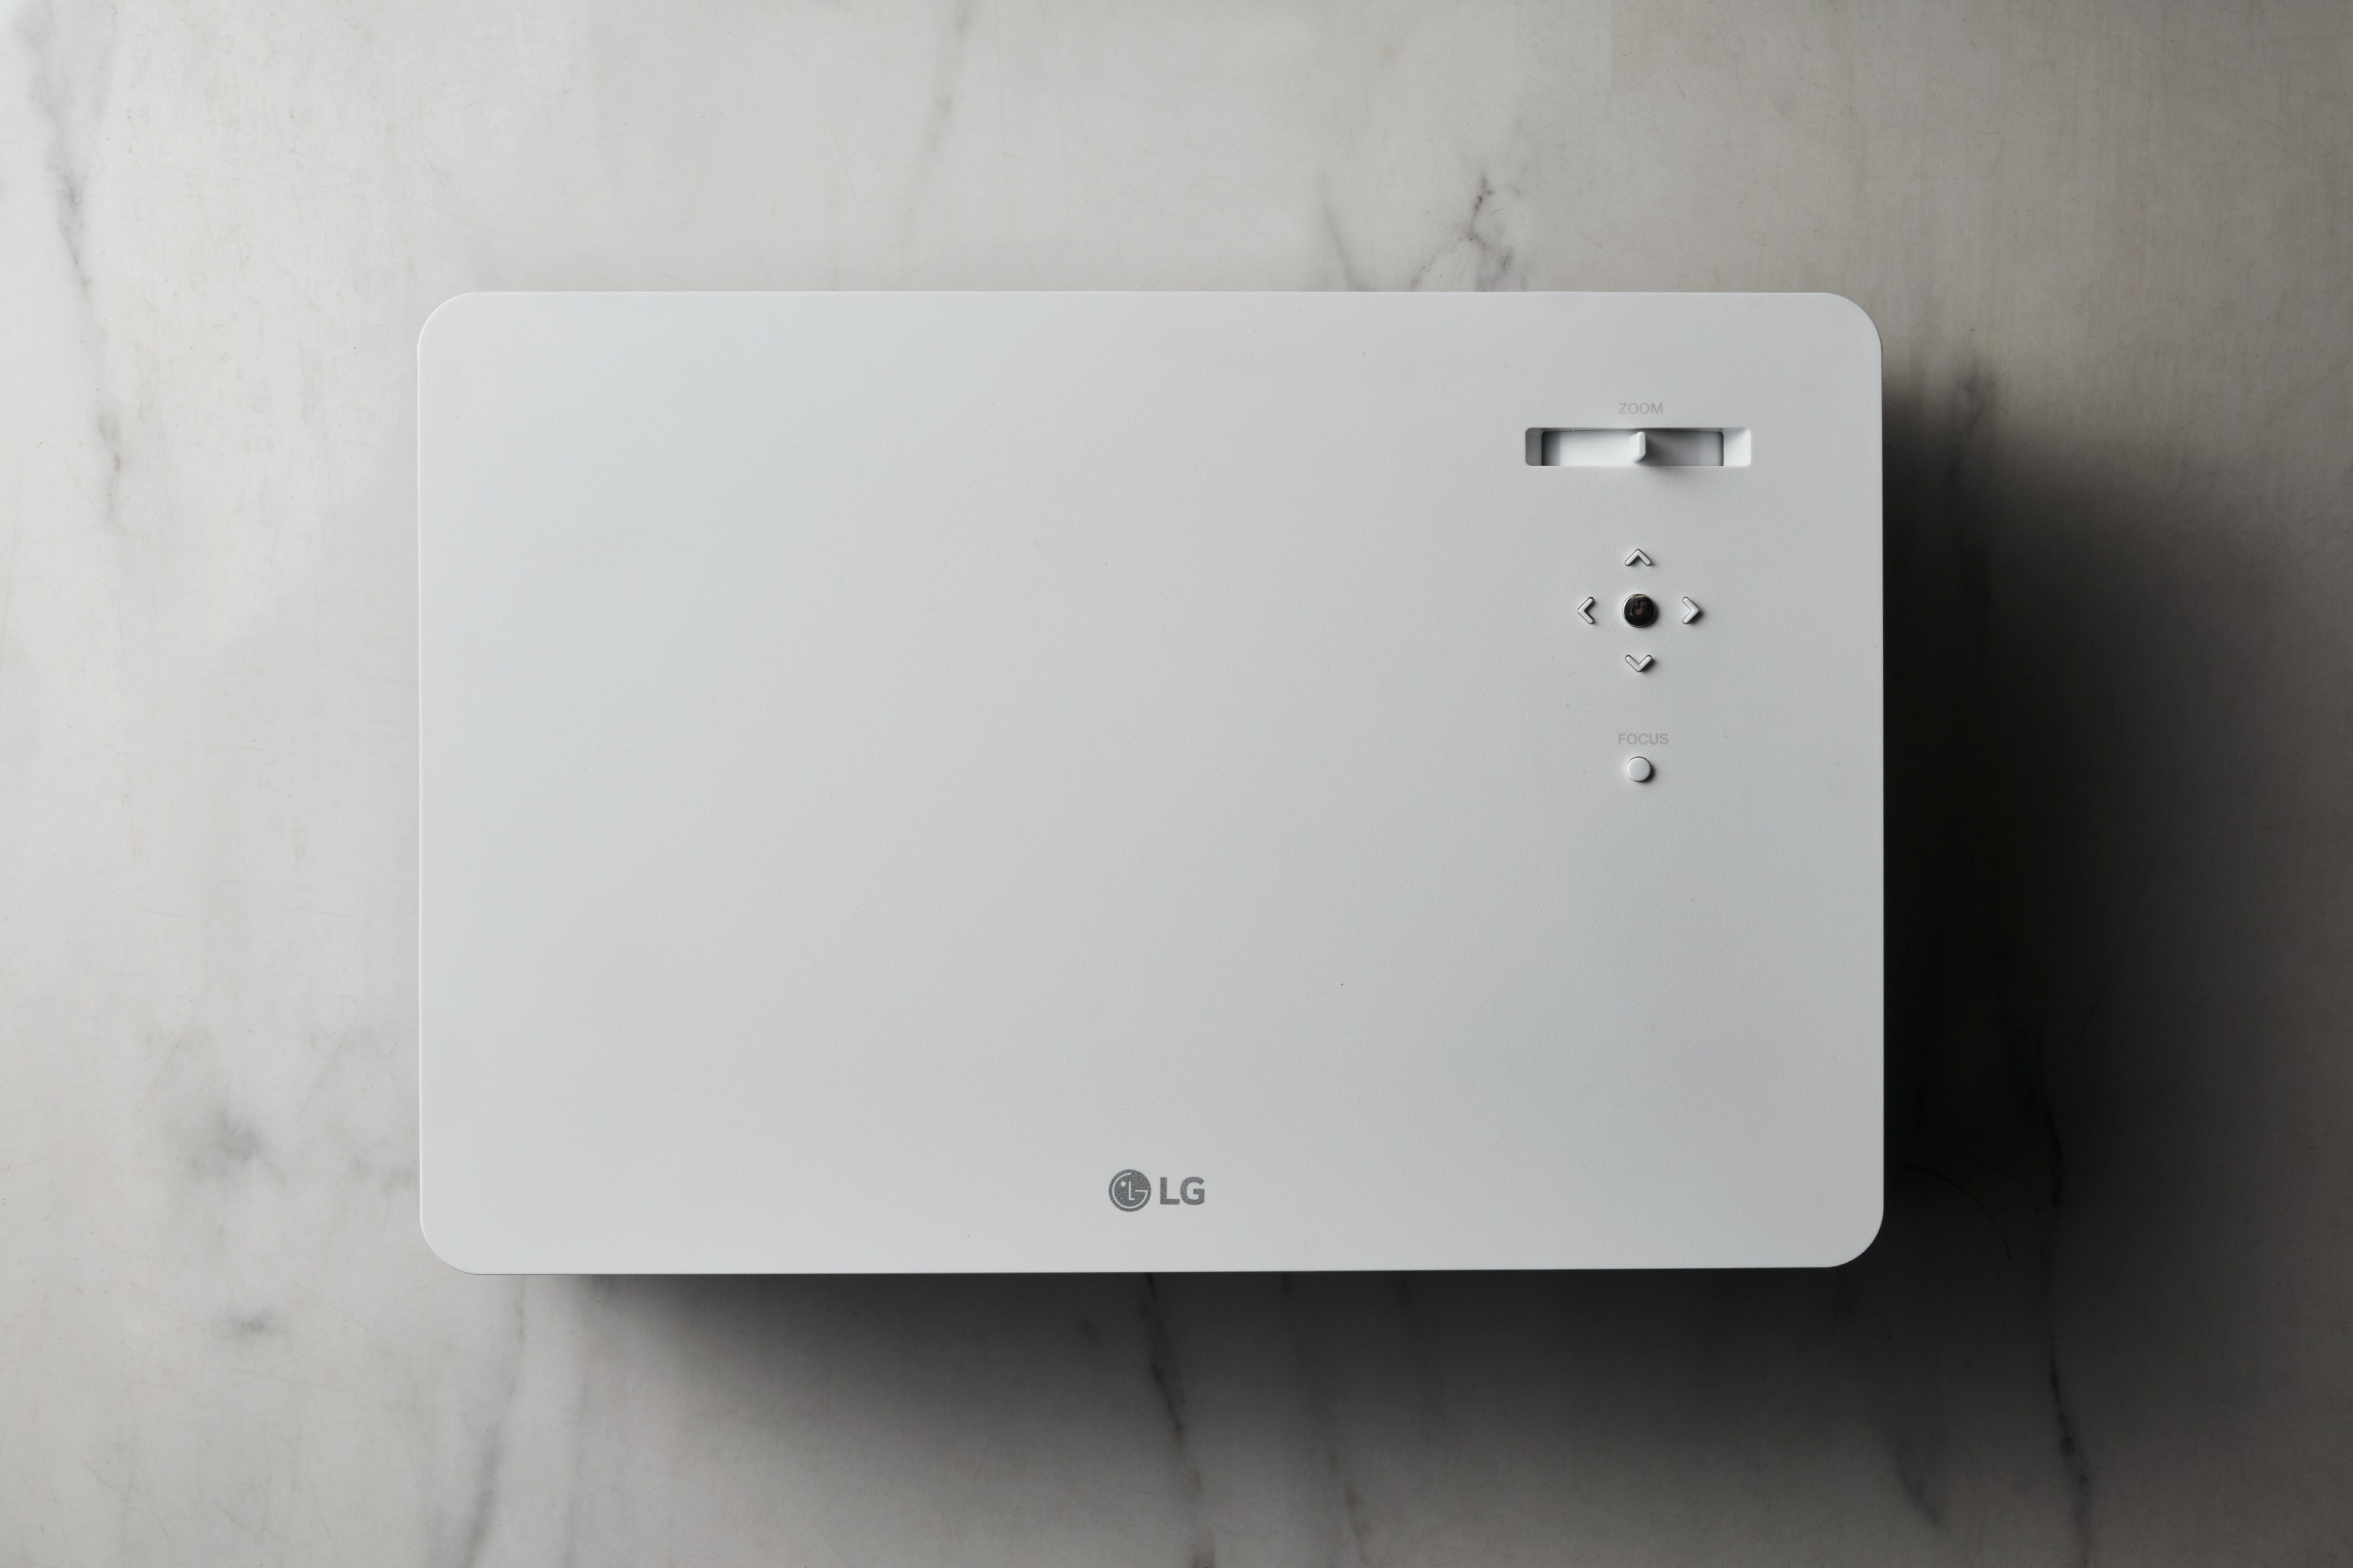 A top view of LG CineBeam 4K UHD projector model HU70L